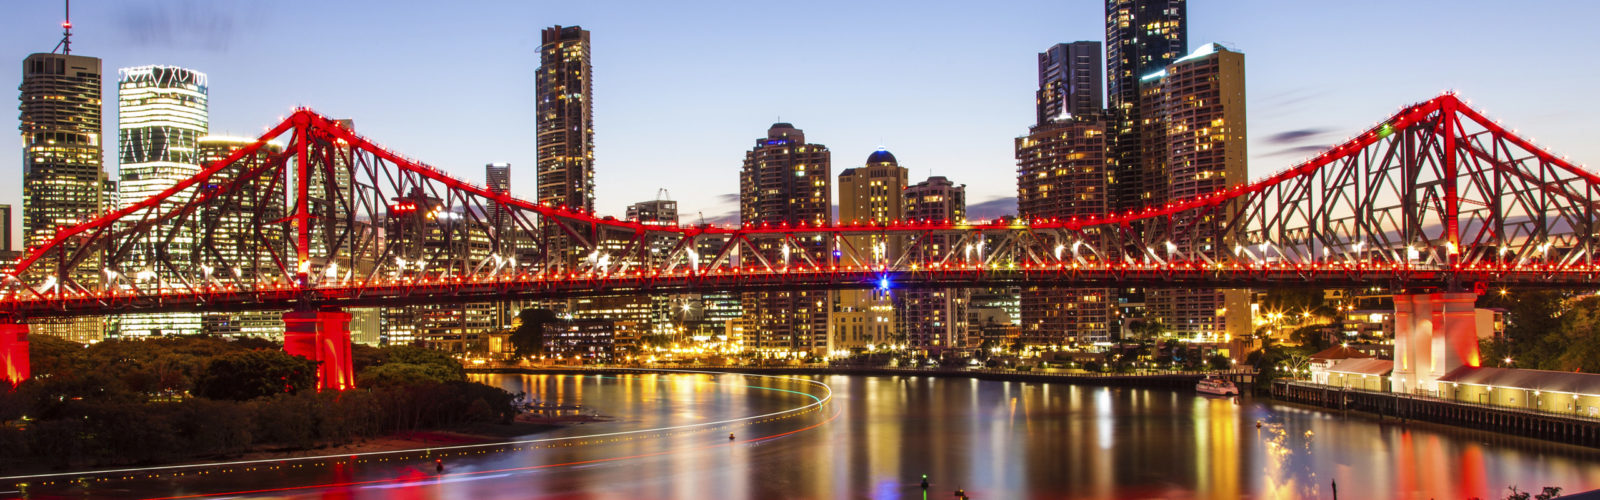 brisbane_story_bridge_night-1600x500-cc.